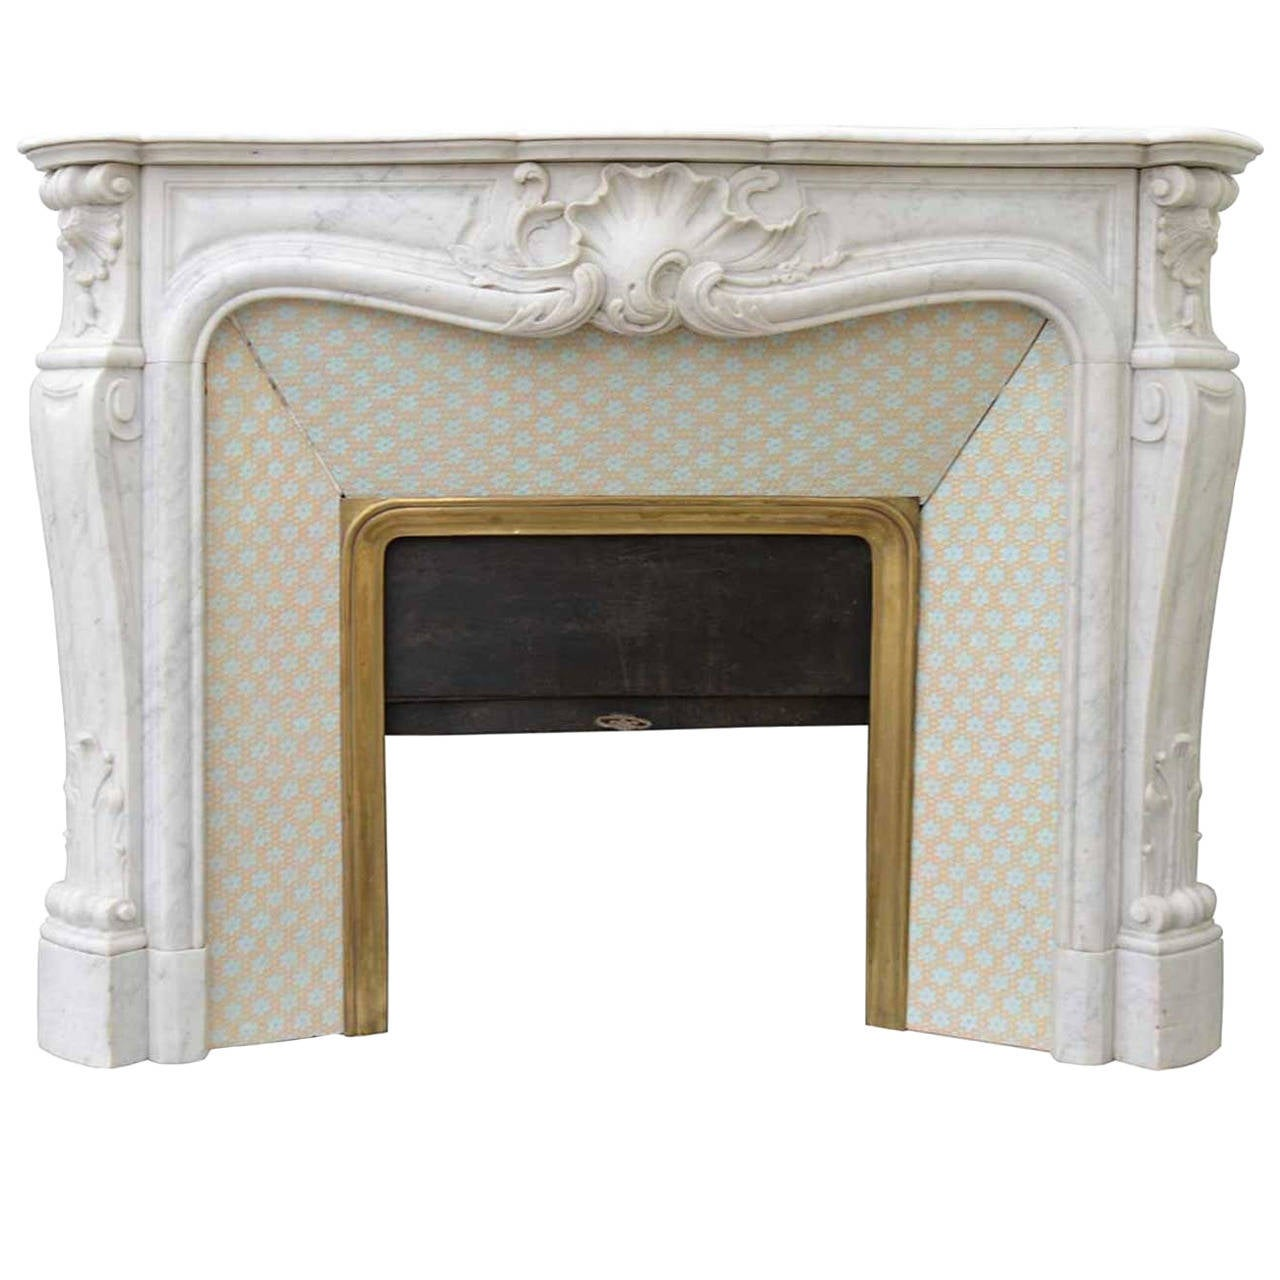 French Louis 15th Style White Marble Fireplace 19th